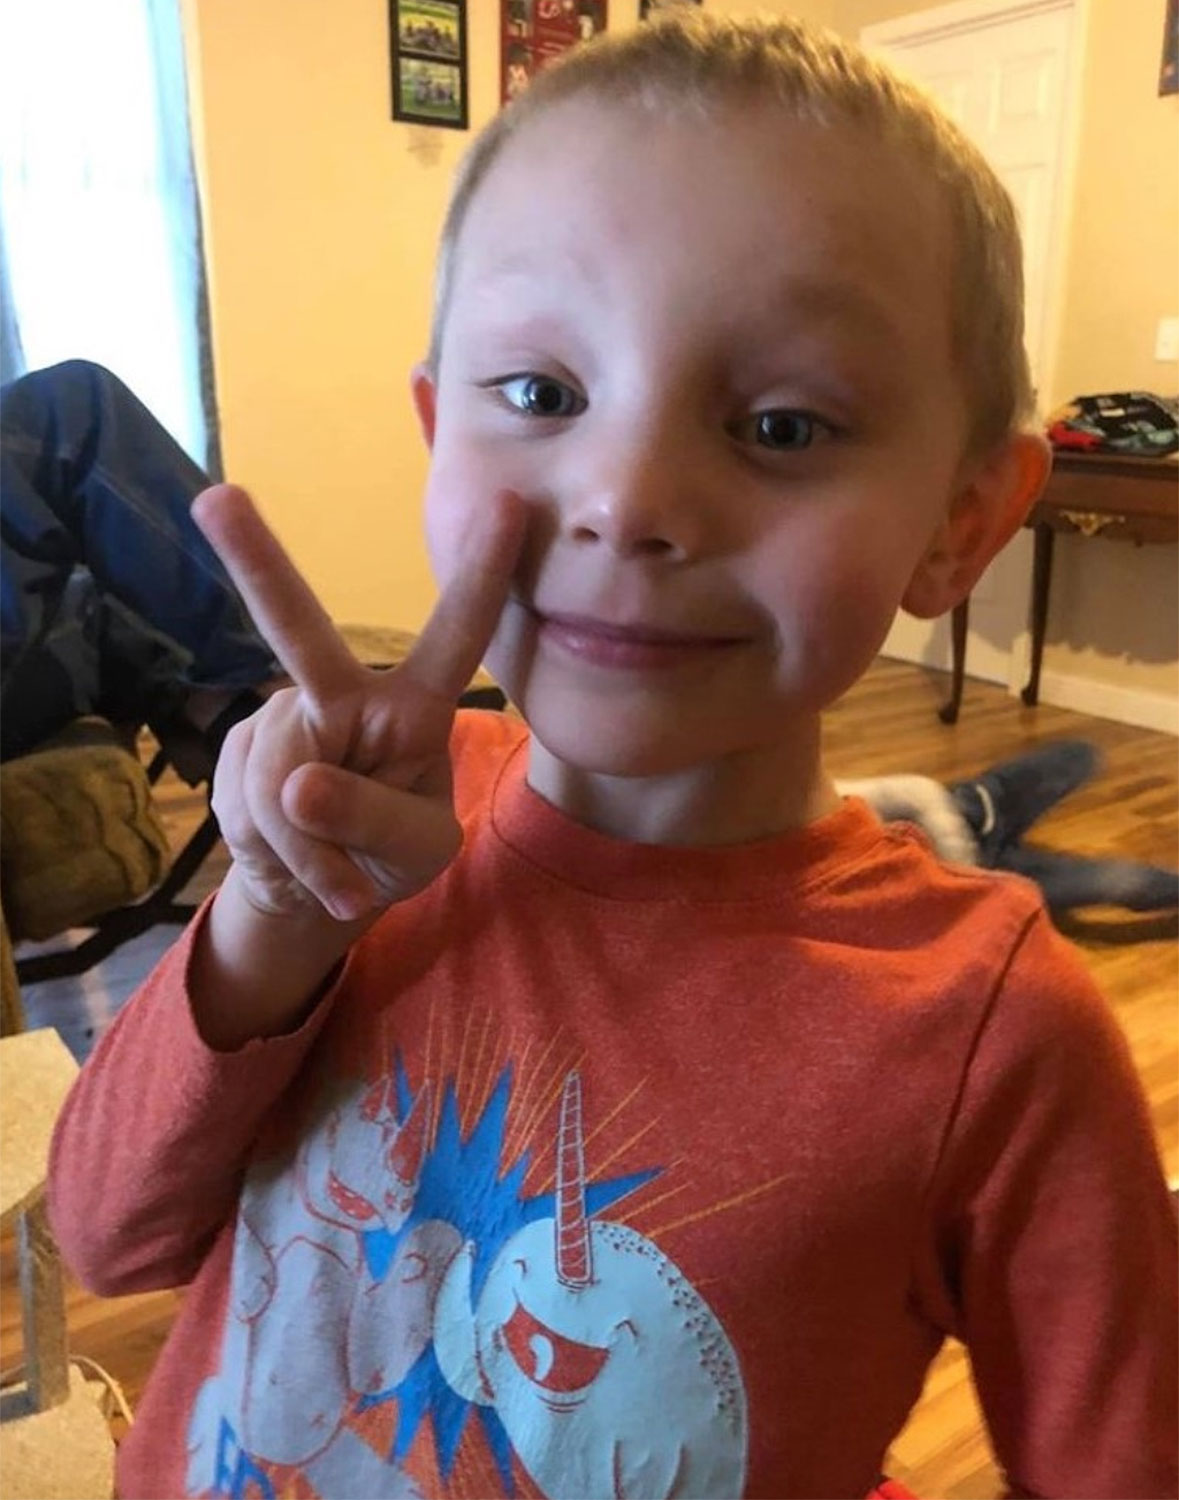 5-Year-Old Michigan Boy With Autism Is Missing, Was Last Seen Playing in Yard